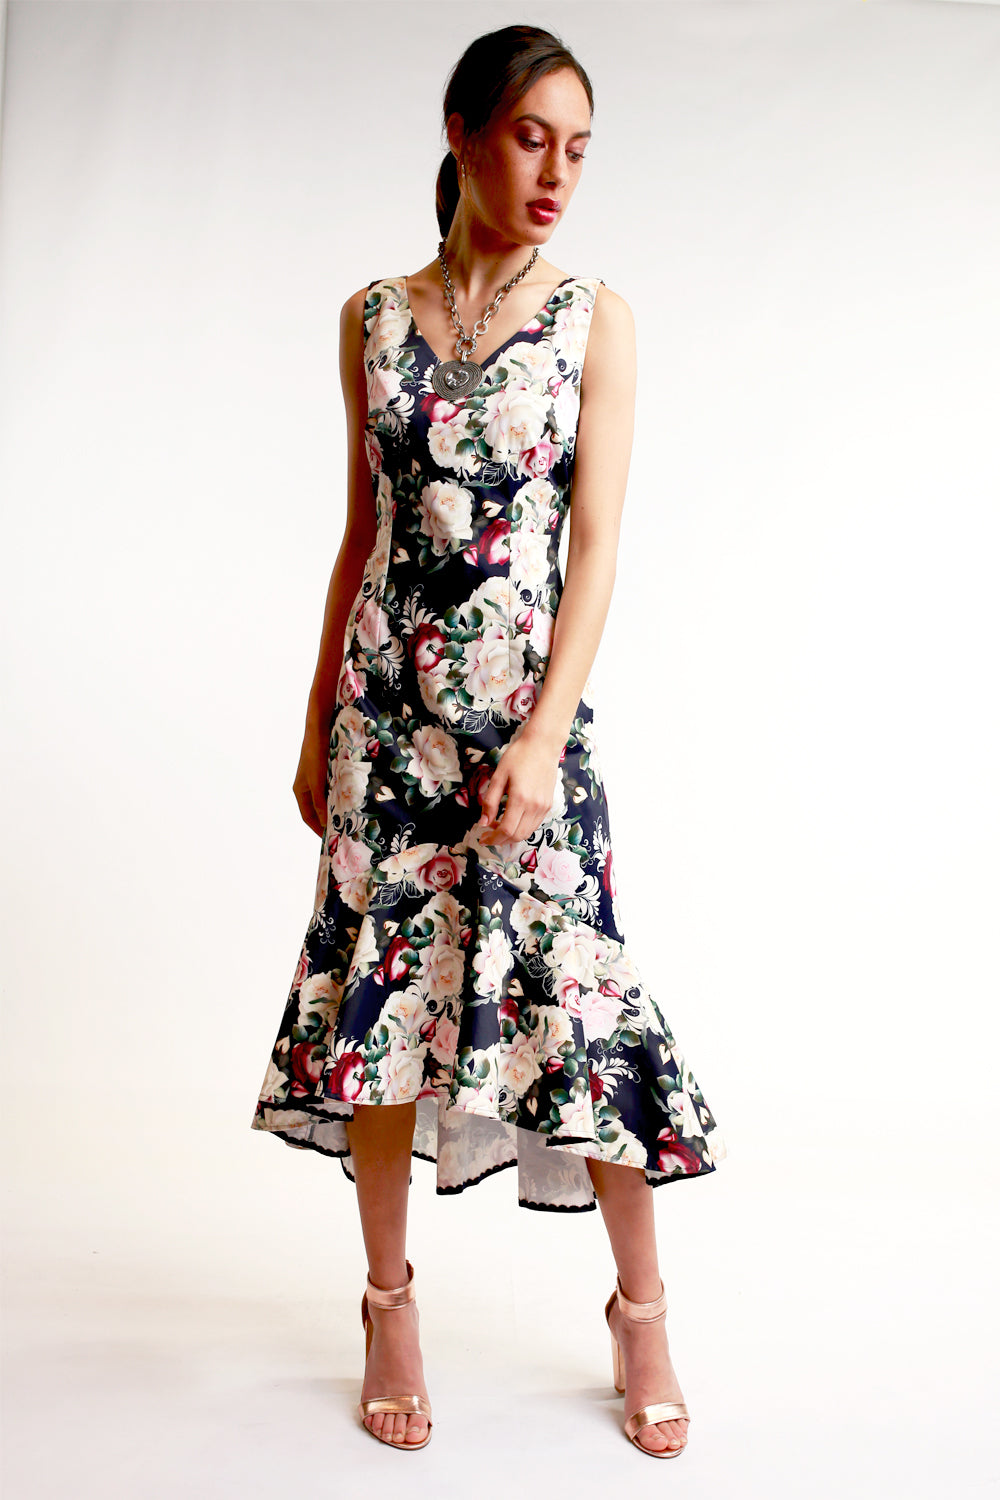 Annah Stretton Navy Floral dress 3/4 length